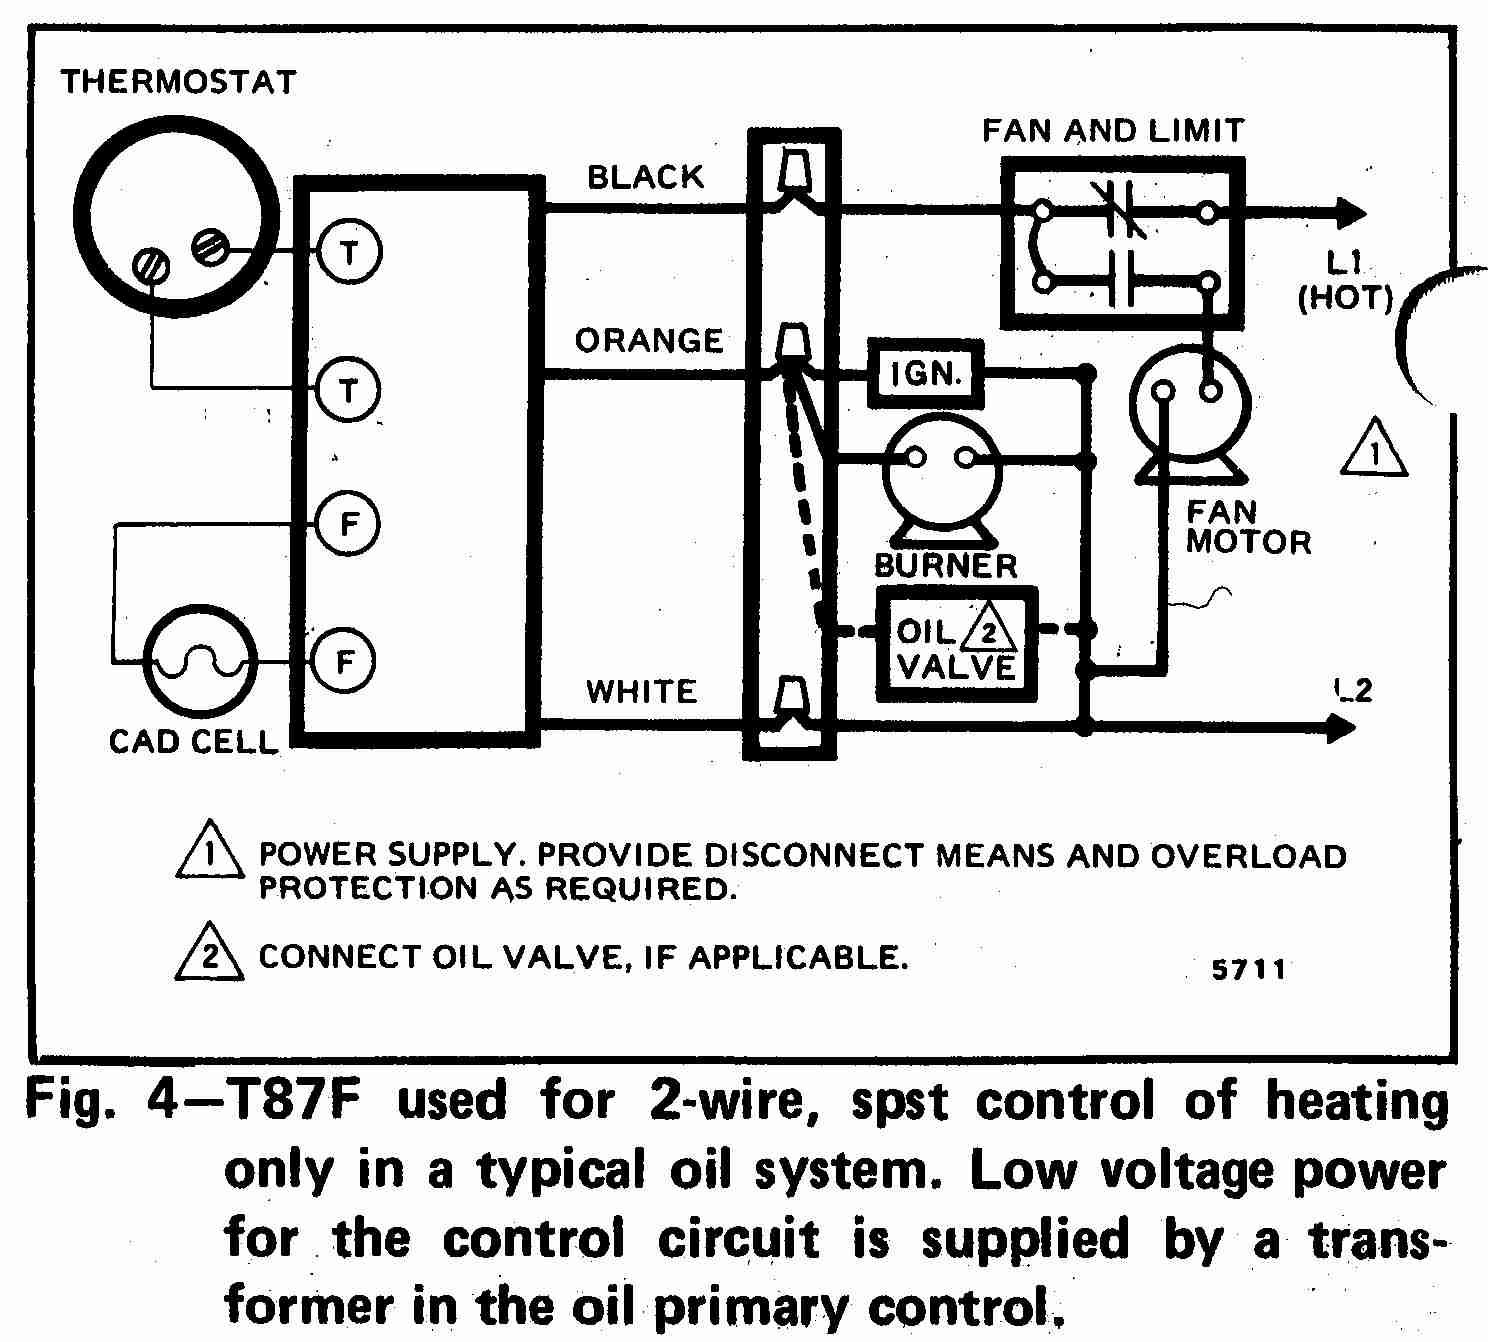 DIAGRAM] S Control Thermostat Wiring Diagram FULL Version HD Quality Wiring  Diagram - OUTLETDIAGRAM.FACCIAMOCULTURISMO.IT | Hvac Fan Control Wiring Diagrams |  | Diagram Database - facciamoculturismo.it